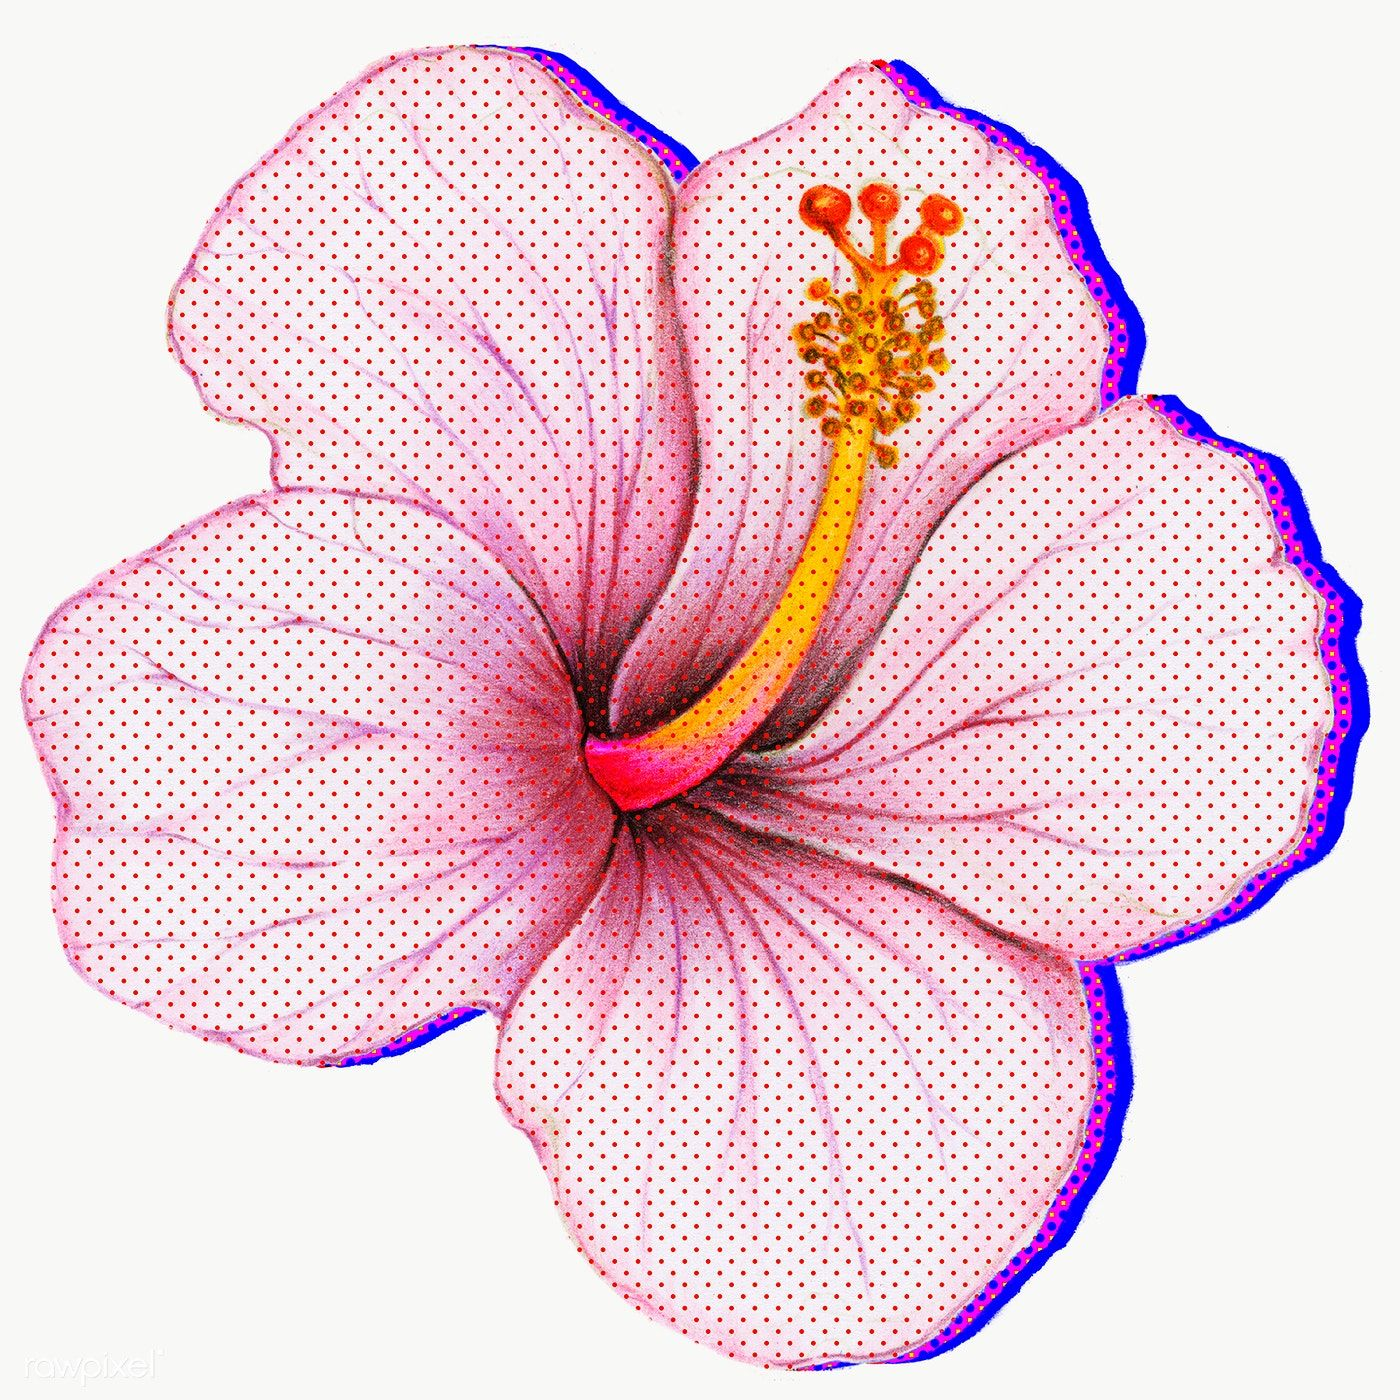 Halftone Hibiscus Flower With Neon Outline Sticker Overlay Free Image By Rawpixel Com Manotang In 2020 Hibiscus Flowers Flower Outline Hibiscus